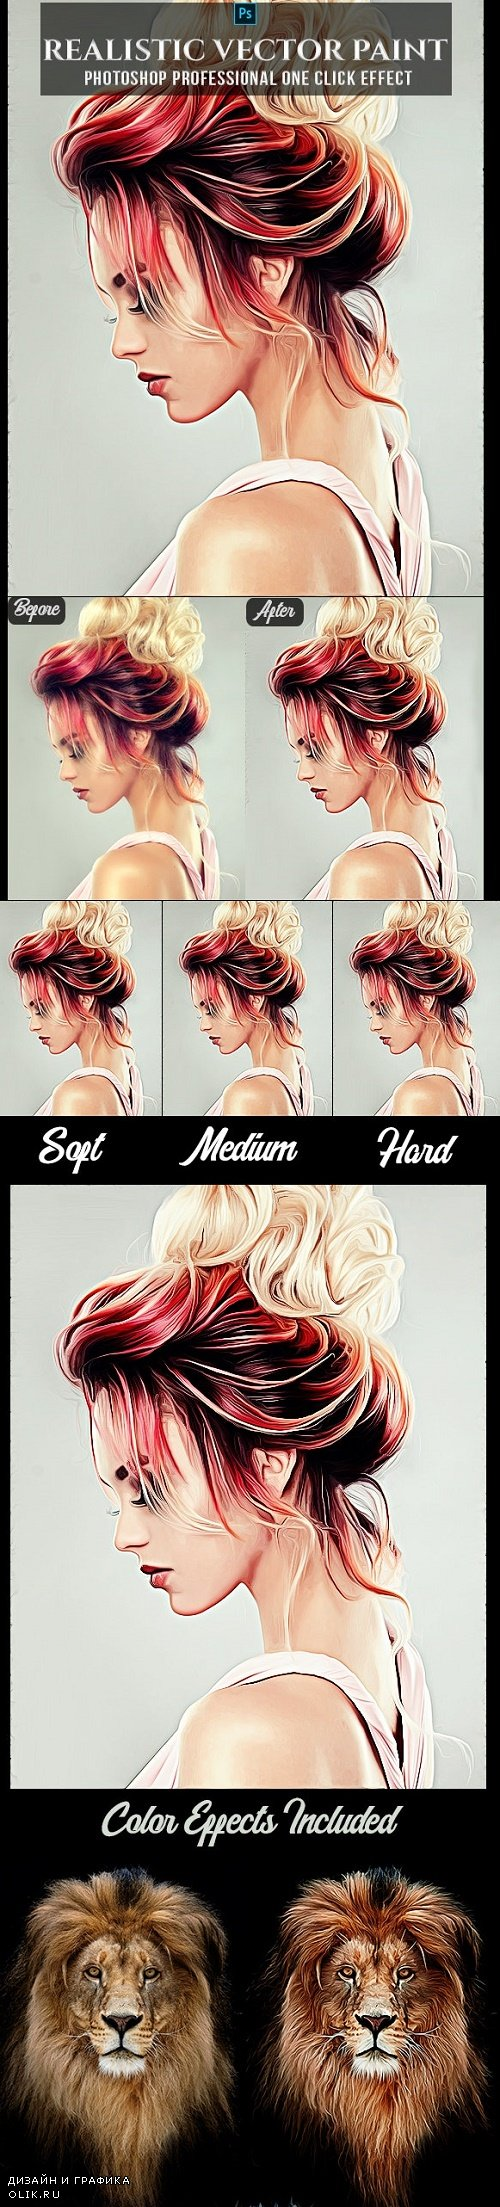 Realistic Vector Painting Photoshop Action 24510257